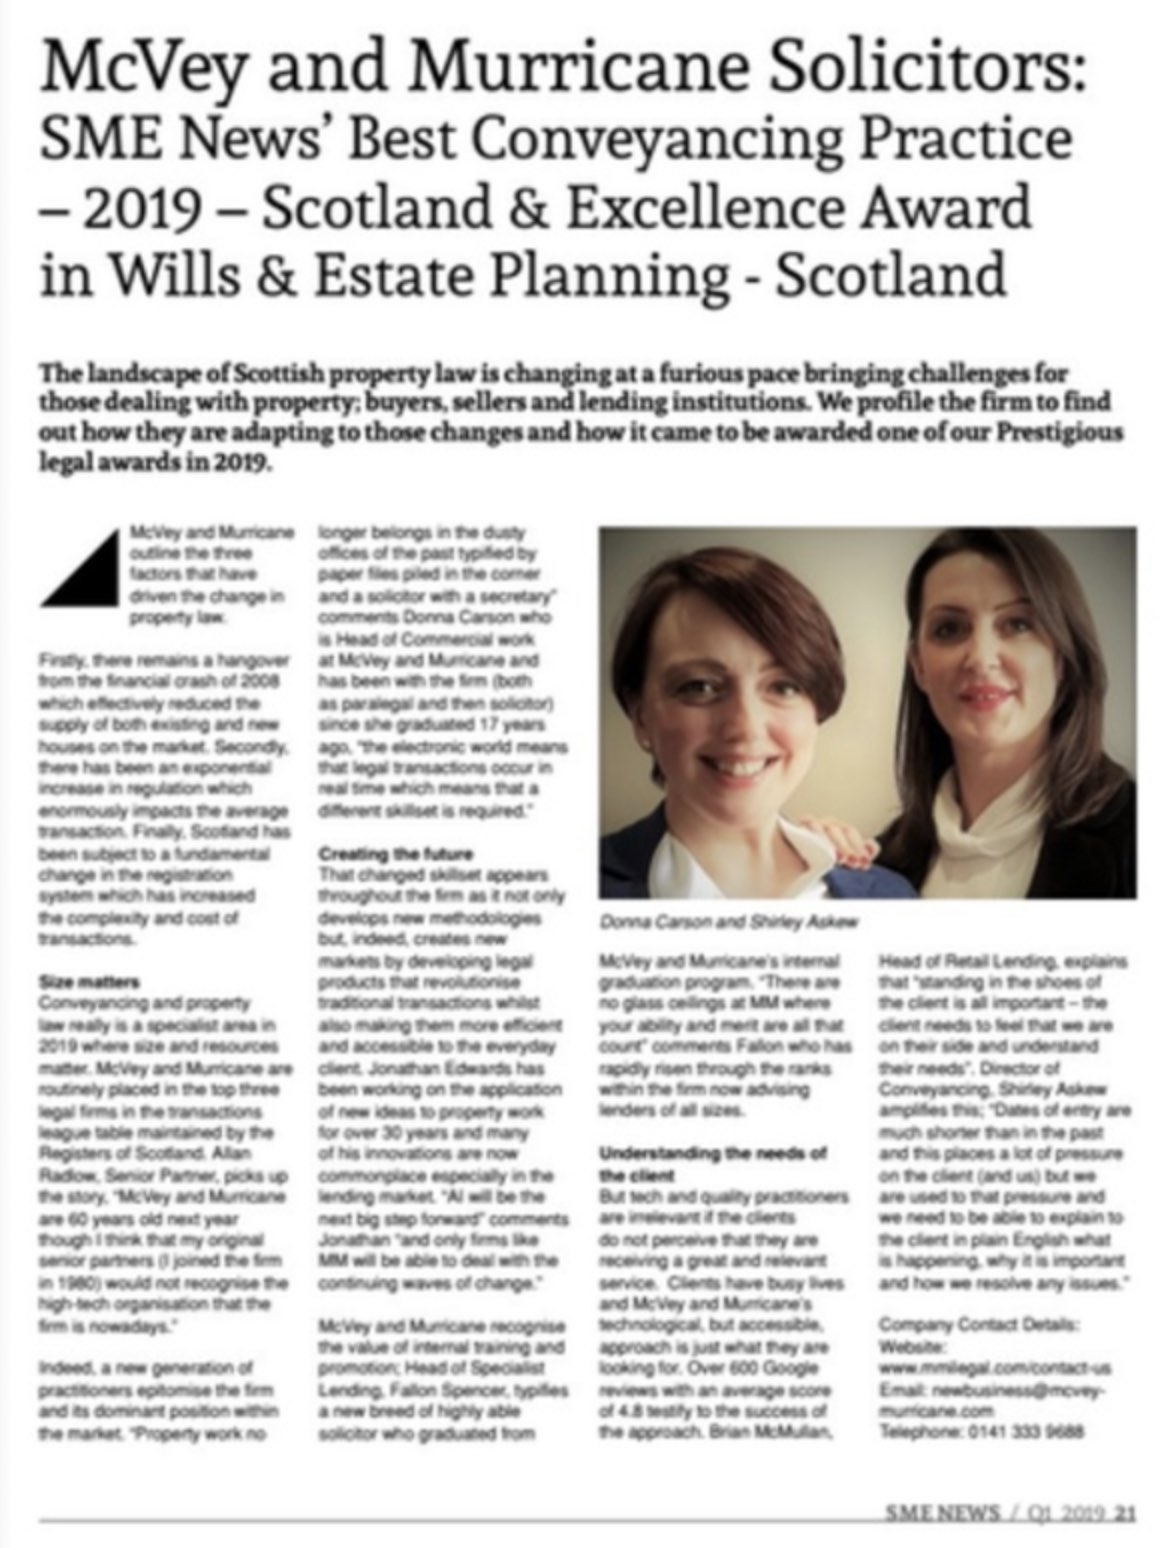 McVey and Murricane SME News' Best Conveyancing Practice